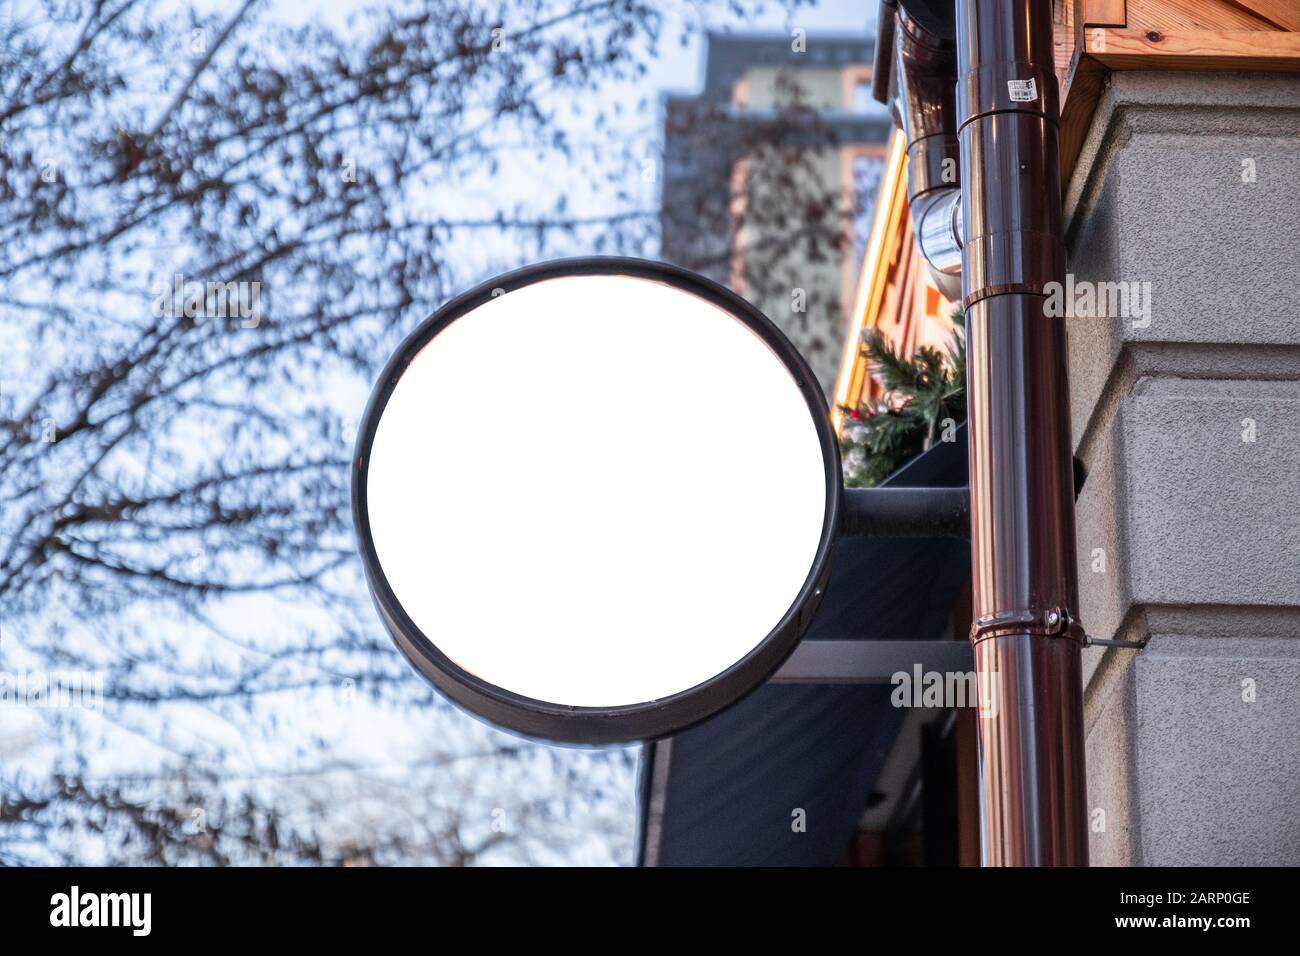 Round Frame Signboard Template For Cafe Restaurant And Catering White Logo Design Example Mockup Stock Photo Alamy